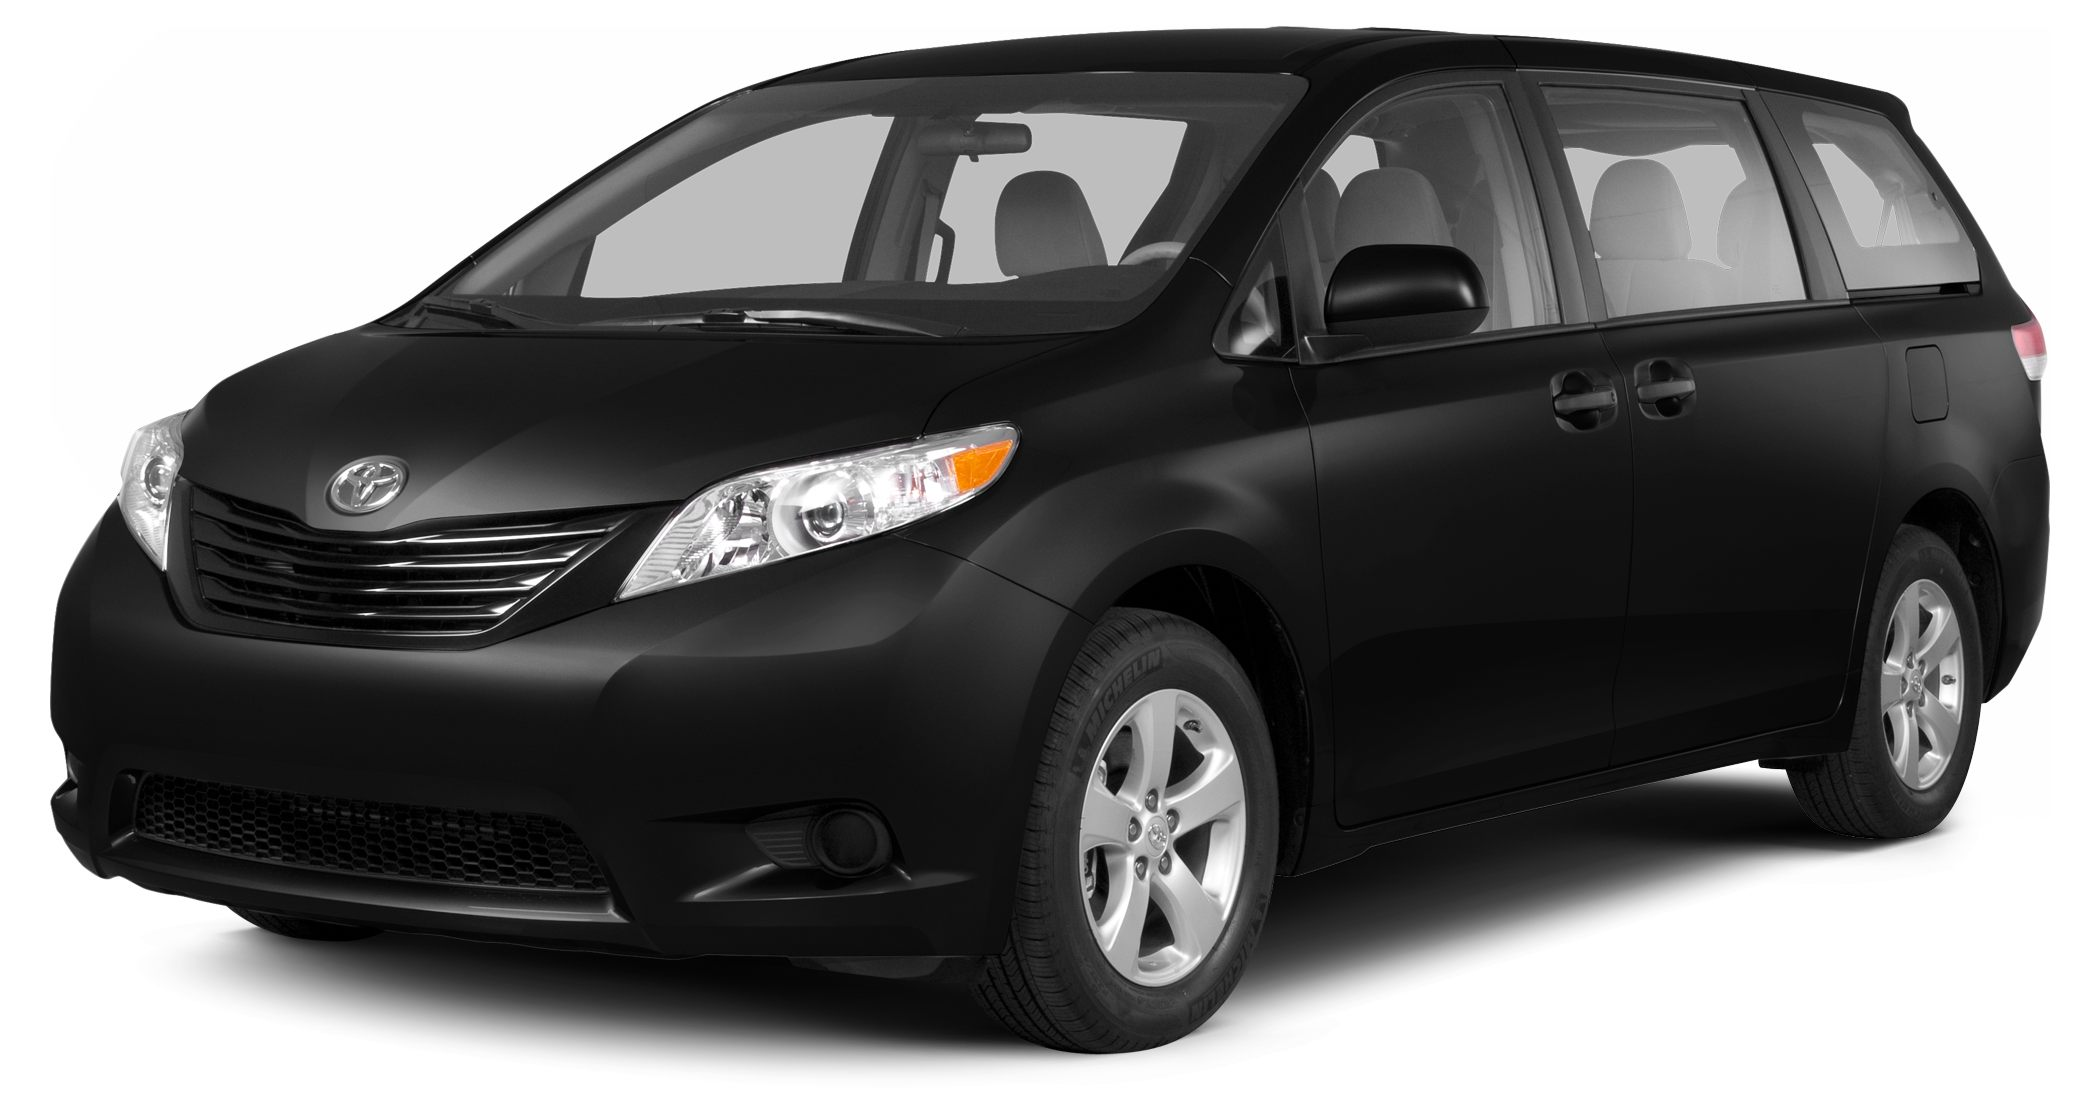 2013 Toyota Sienna LE 8 Passenger FUEL EFFICIENT 25 MPG Hwy18 MPG City CARFAX 1-Owner Third Row